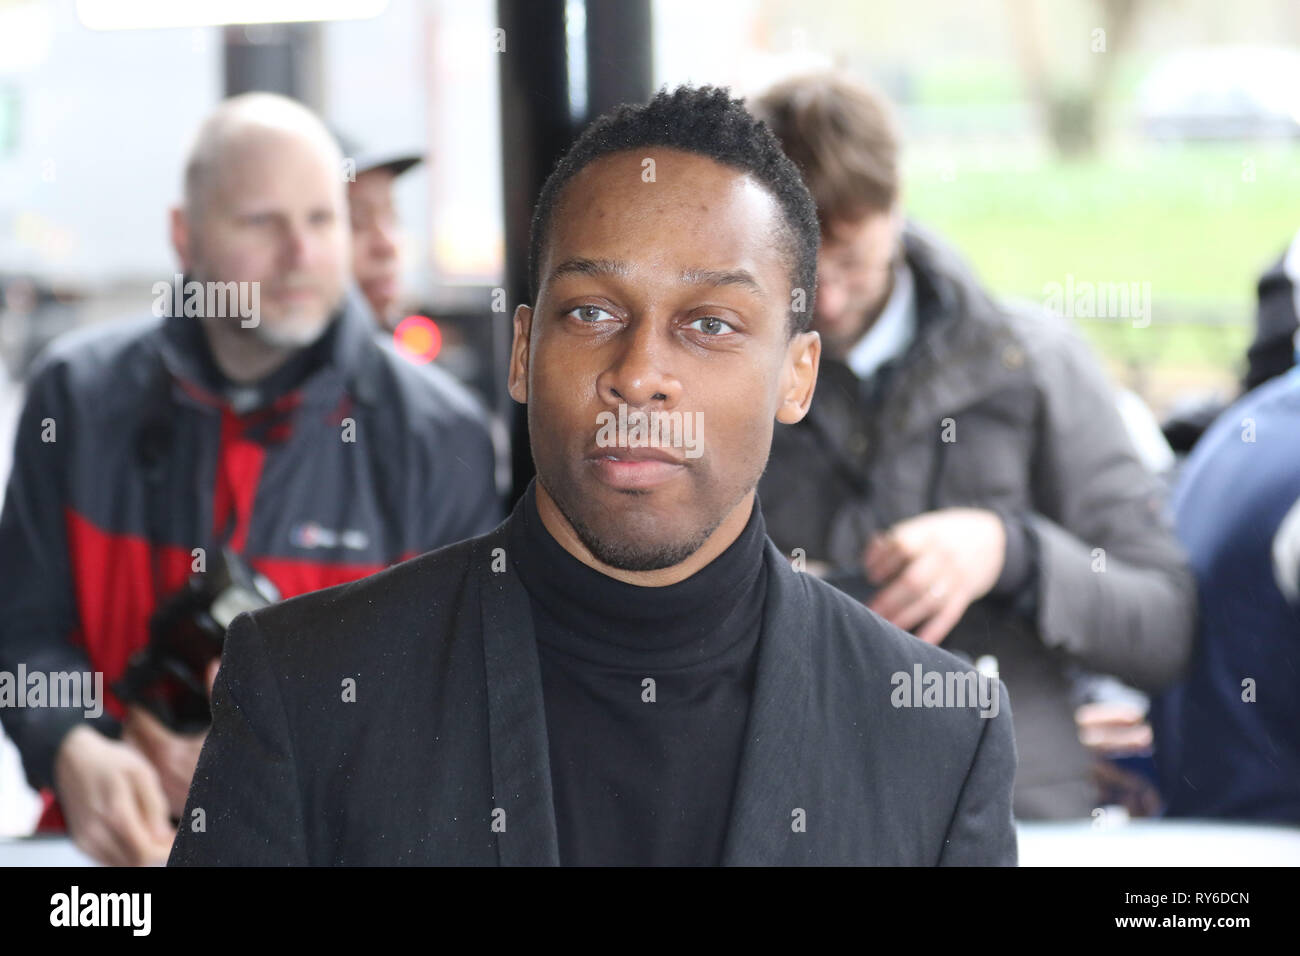 London, UK. 12th Mar, 2019. Lemar, The TRIC Awards 50th Anniversary 2019, The Grosvenor House Hotel, London, UK, 12 March 2019, Photo by Richard Goldschmidt Credit: Rich Gold/Alamy Live News - Stock Image